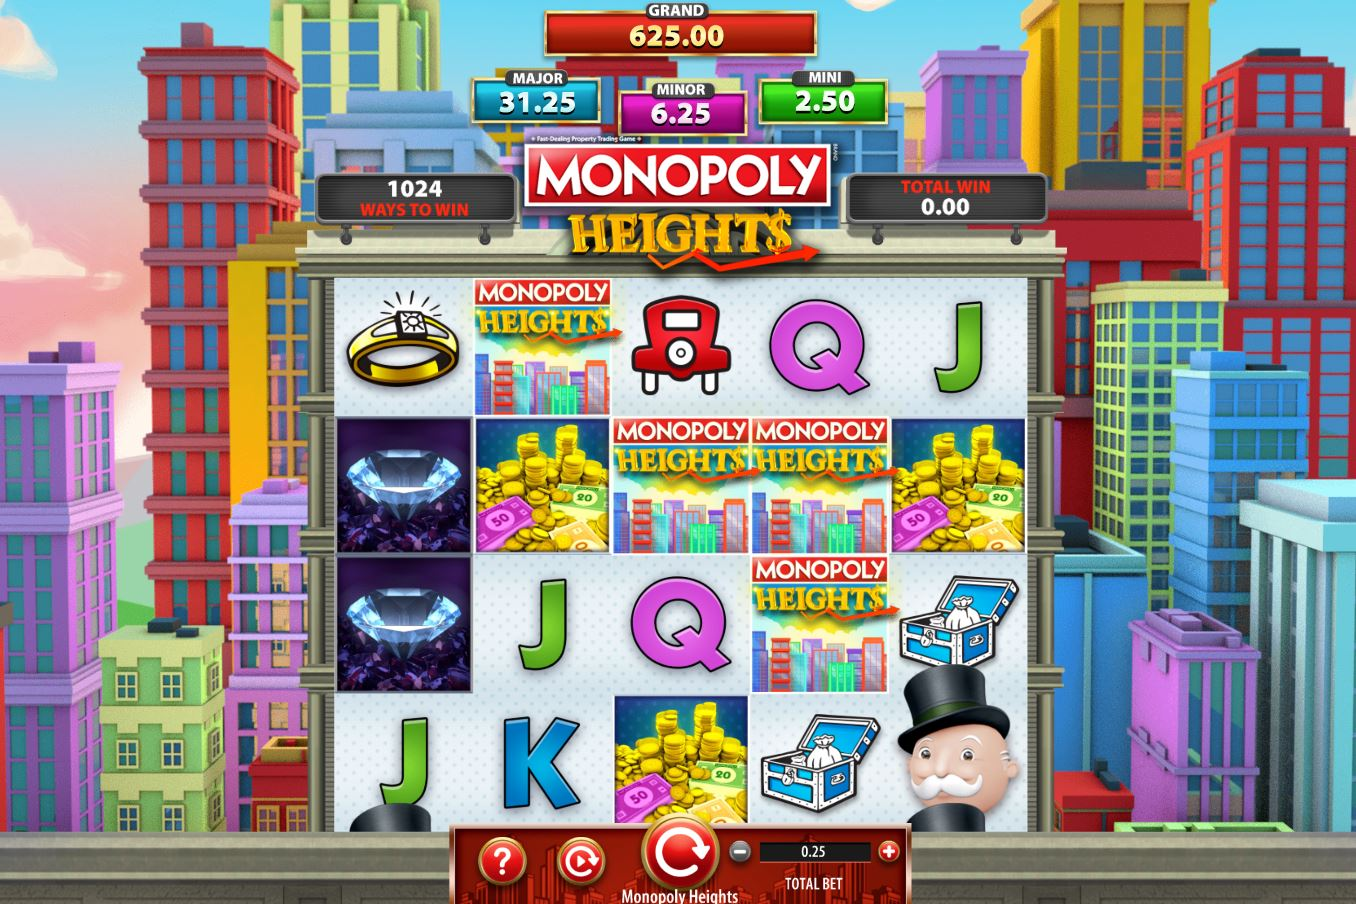 Monopoly Slot Games